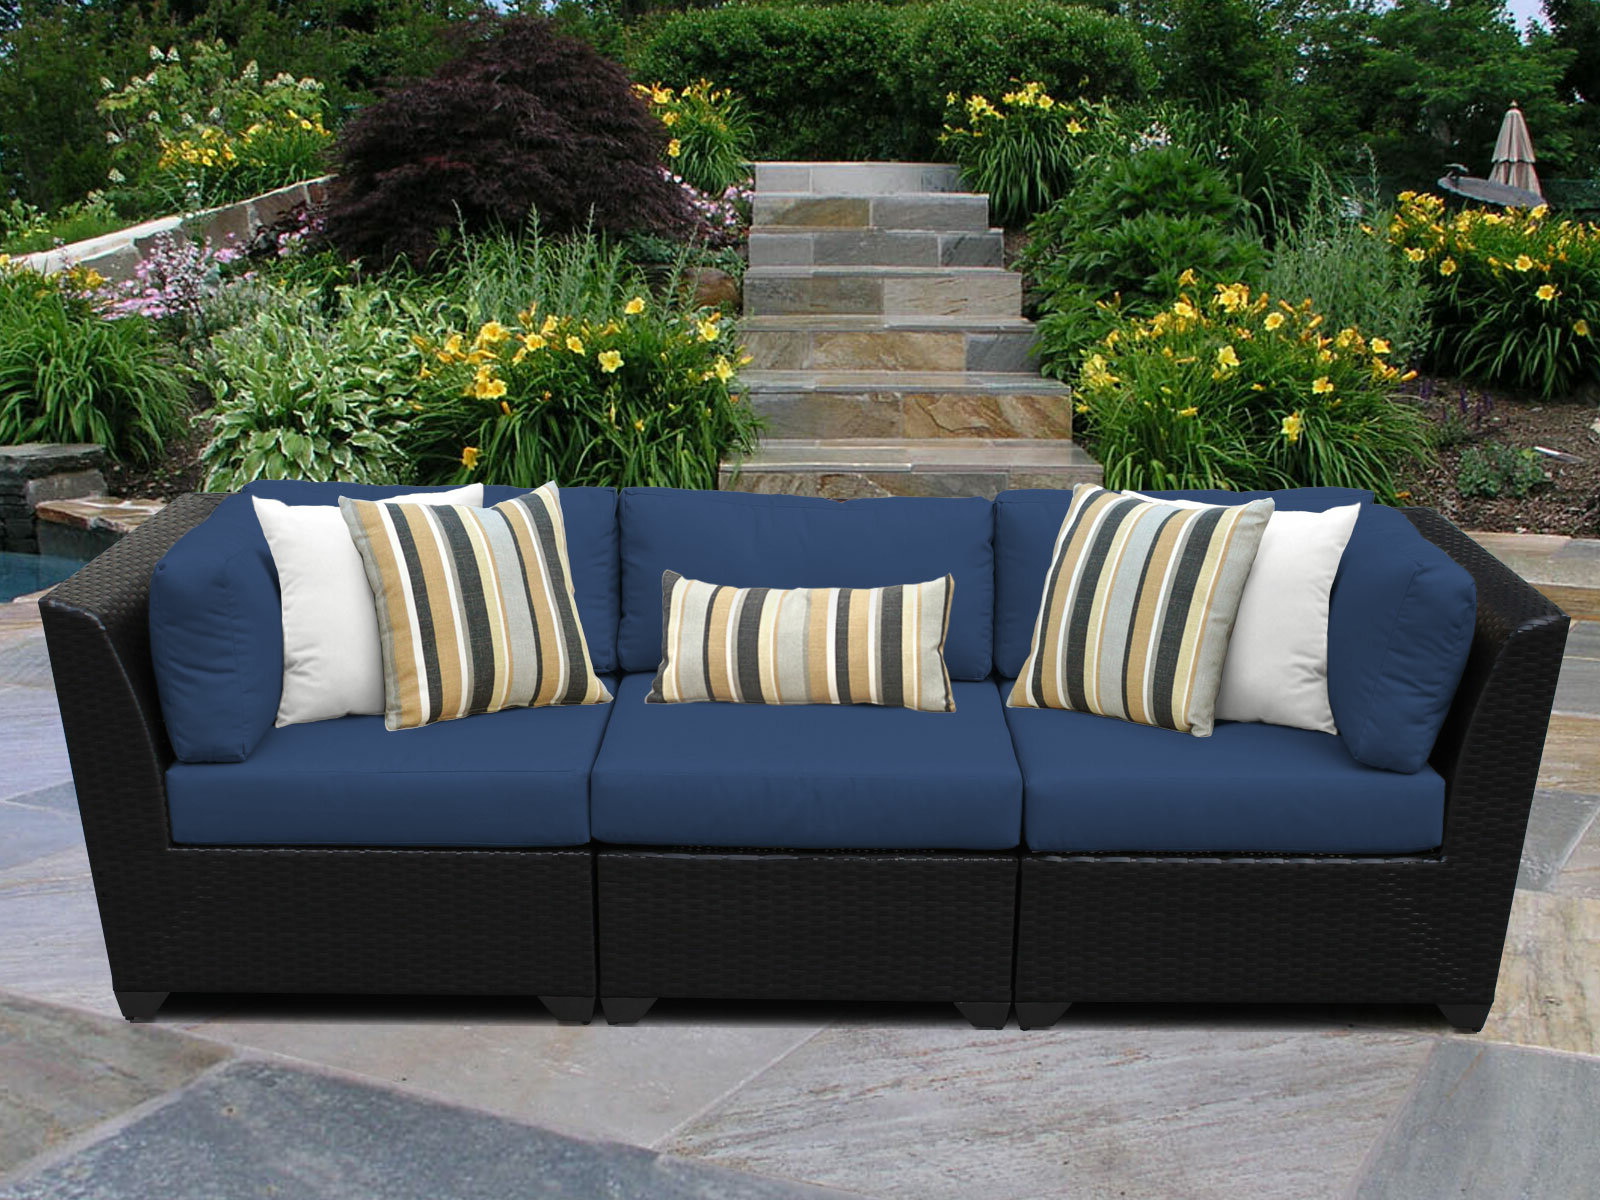 Tegan Patio Sofas With Cushions Intended For Trendy Tegan Patio Sofa With Cushions (View 2 of 25)